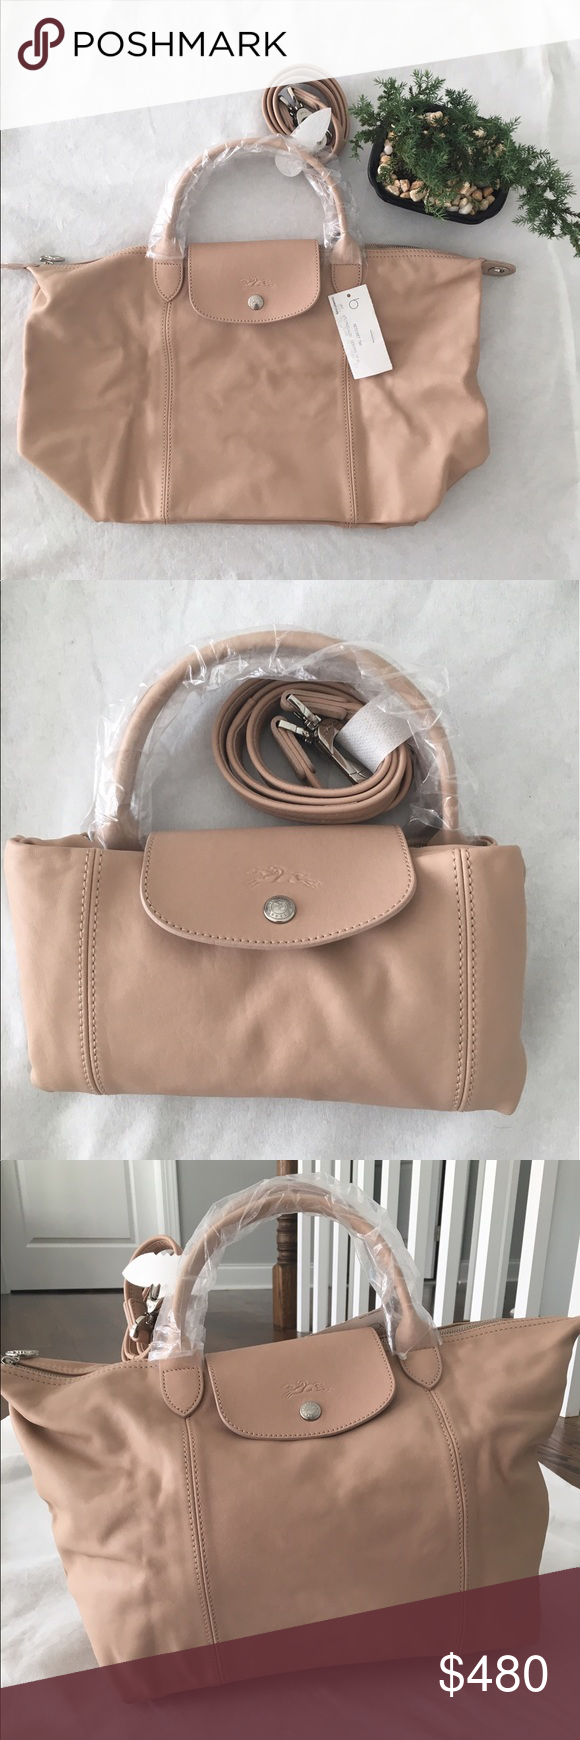 8fadf6139814 Longchamp Le Pliage Cuir NWT beautiful longchamp medium size leather bag.  Sandy Beige color